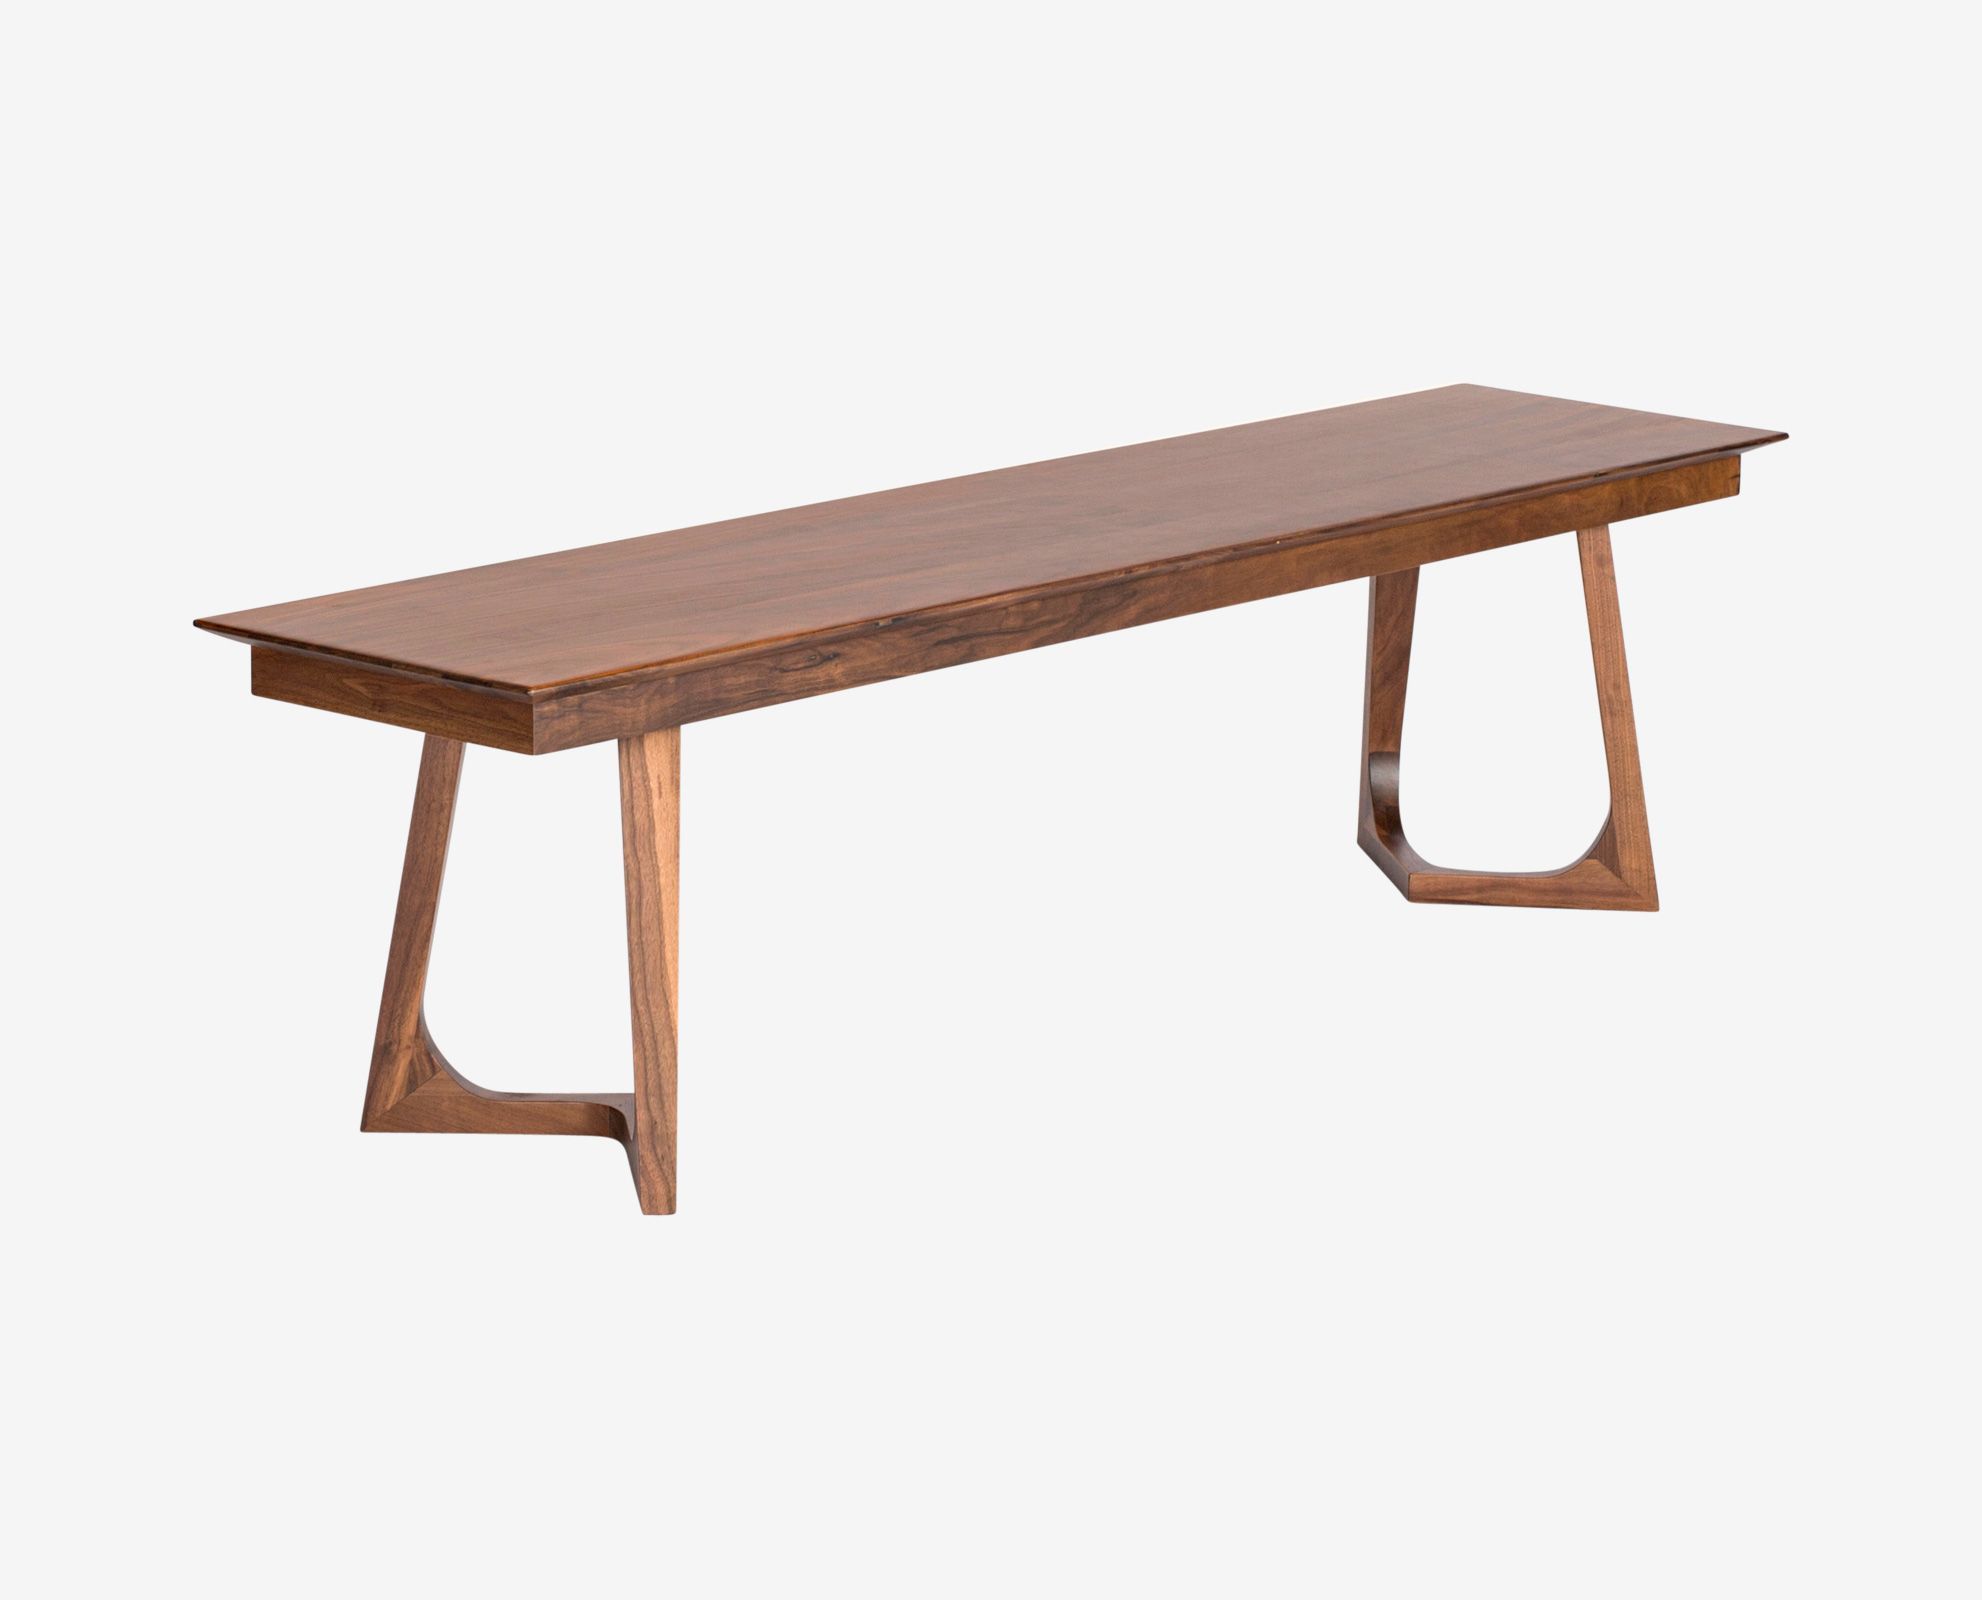 Dania   The Perfect Dining Room Or Entry Way Accessory, The Cress Bench Is  Crafted